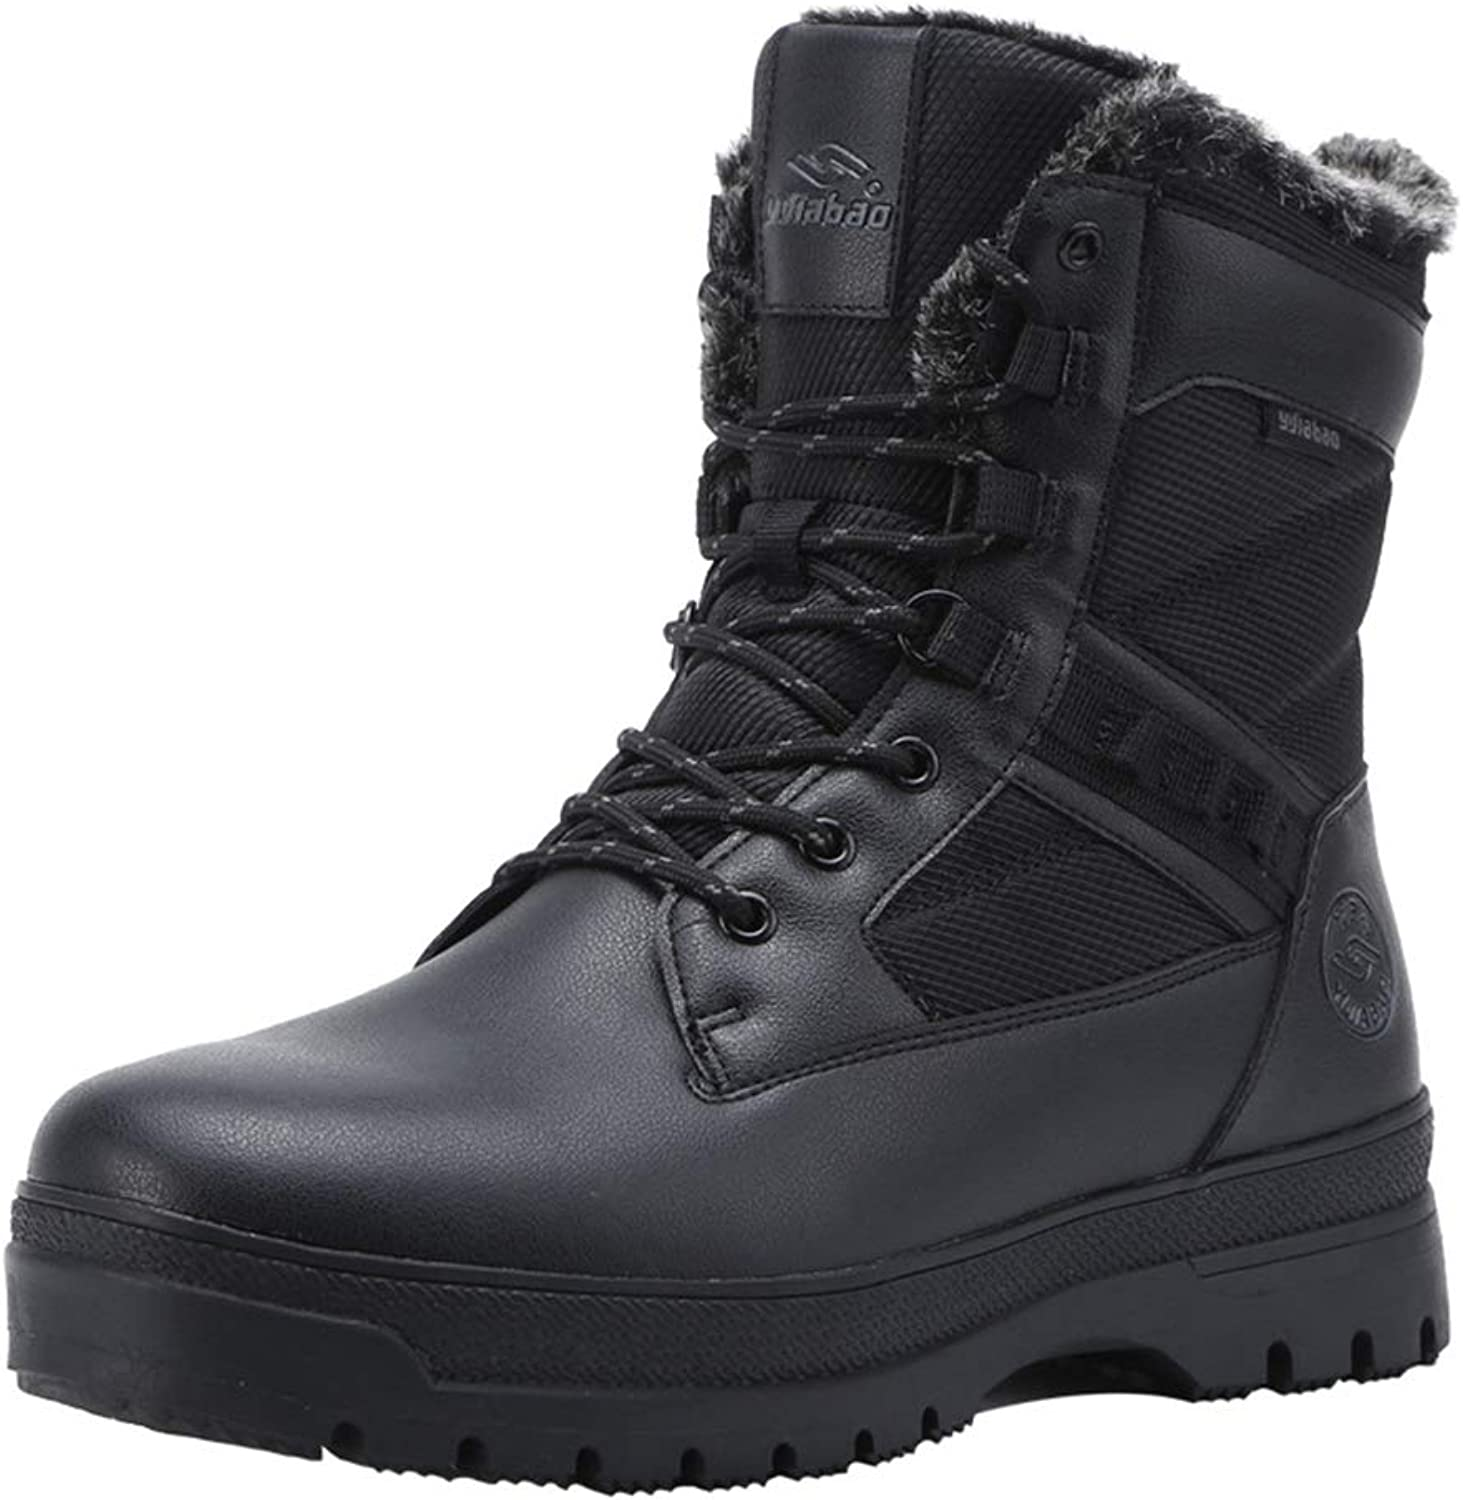 Men's Combat Boots Winter New Non Slip Outdoor High-Top shoes Plus Velvet Wear-Resistant Camping Hiking shoes,Black,43